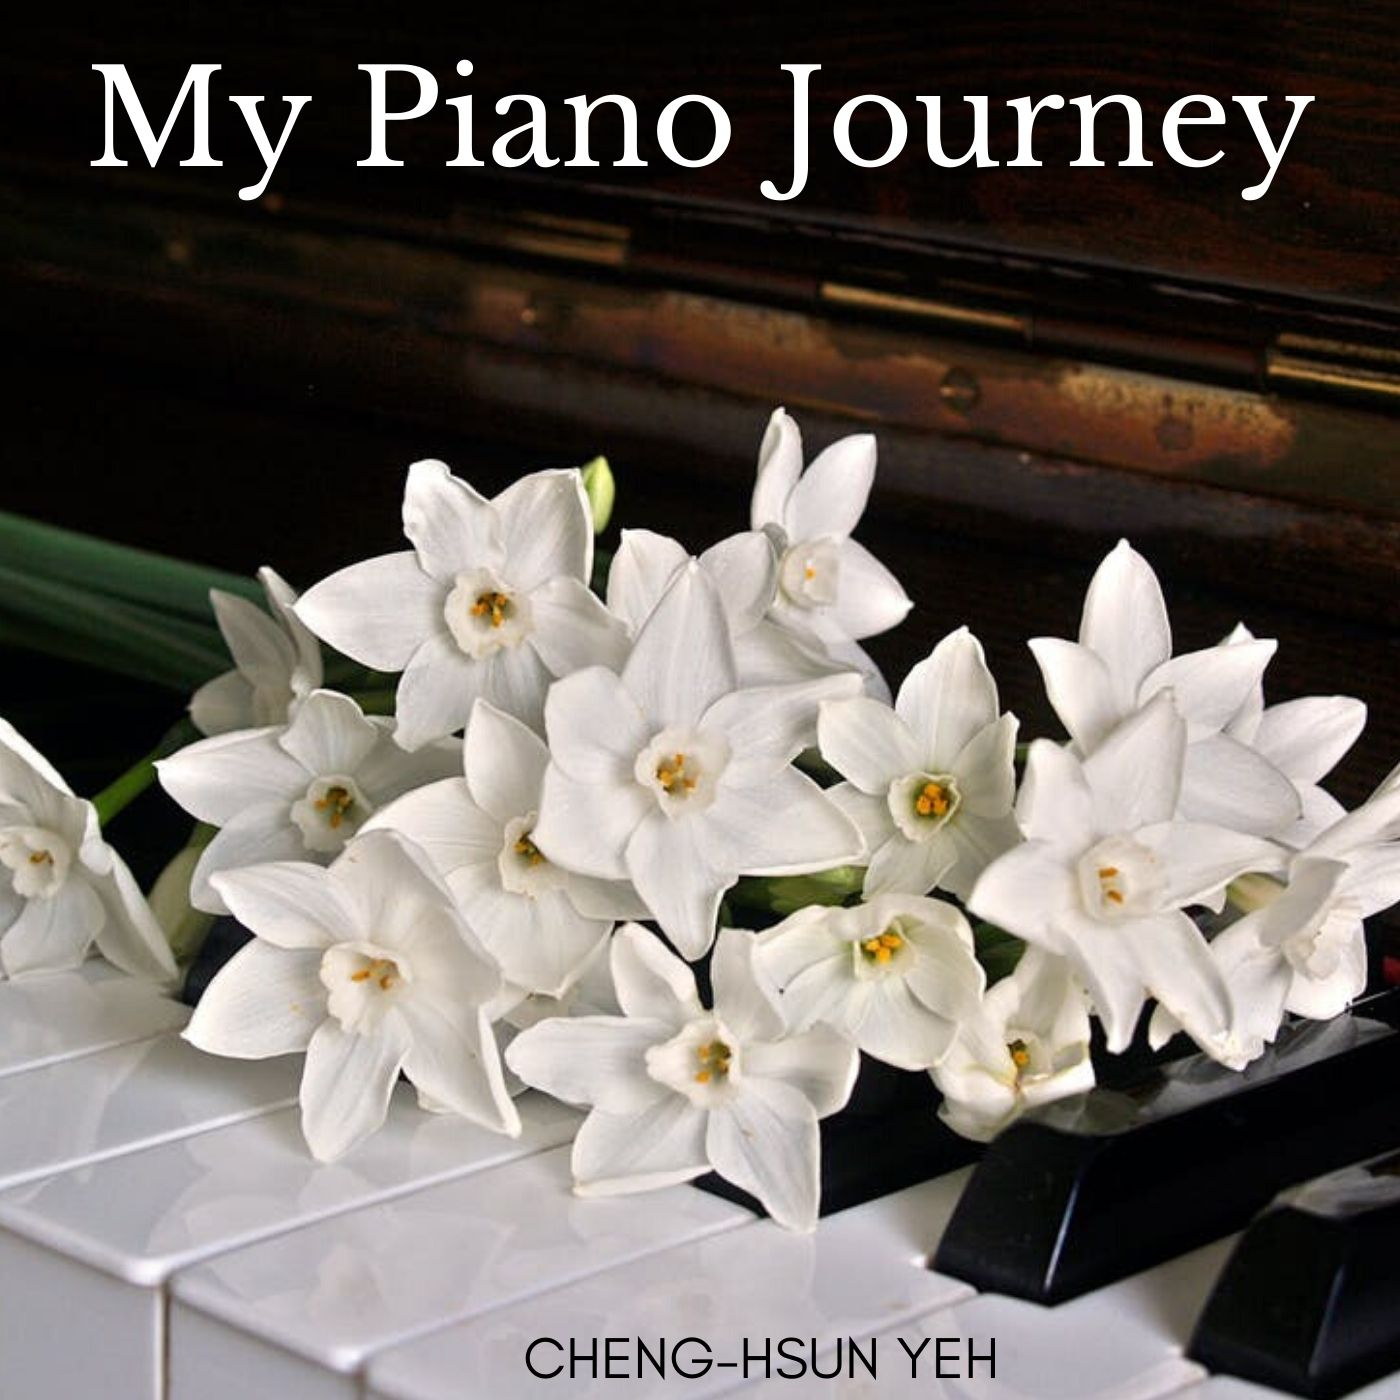 My Piano Journey